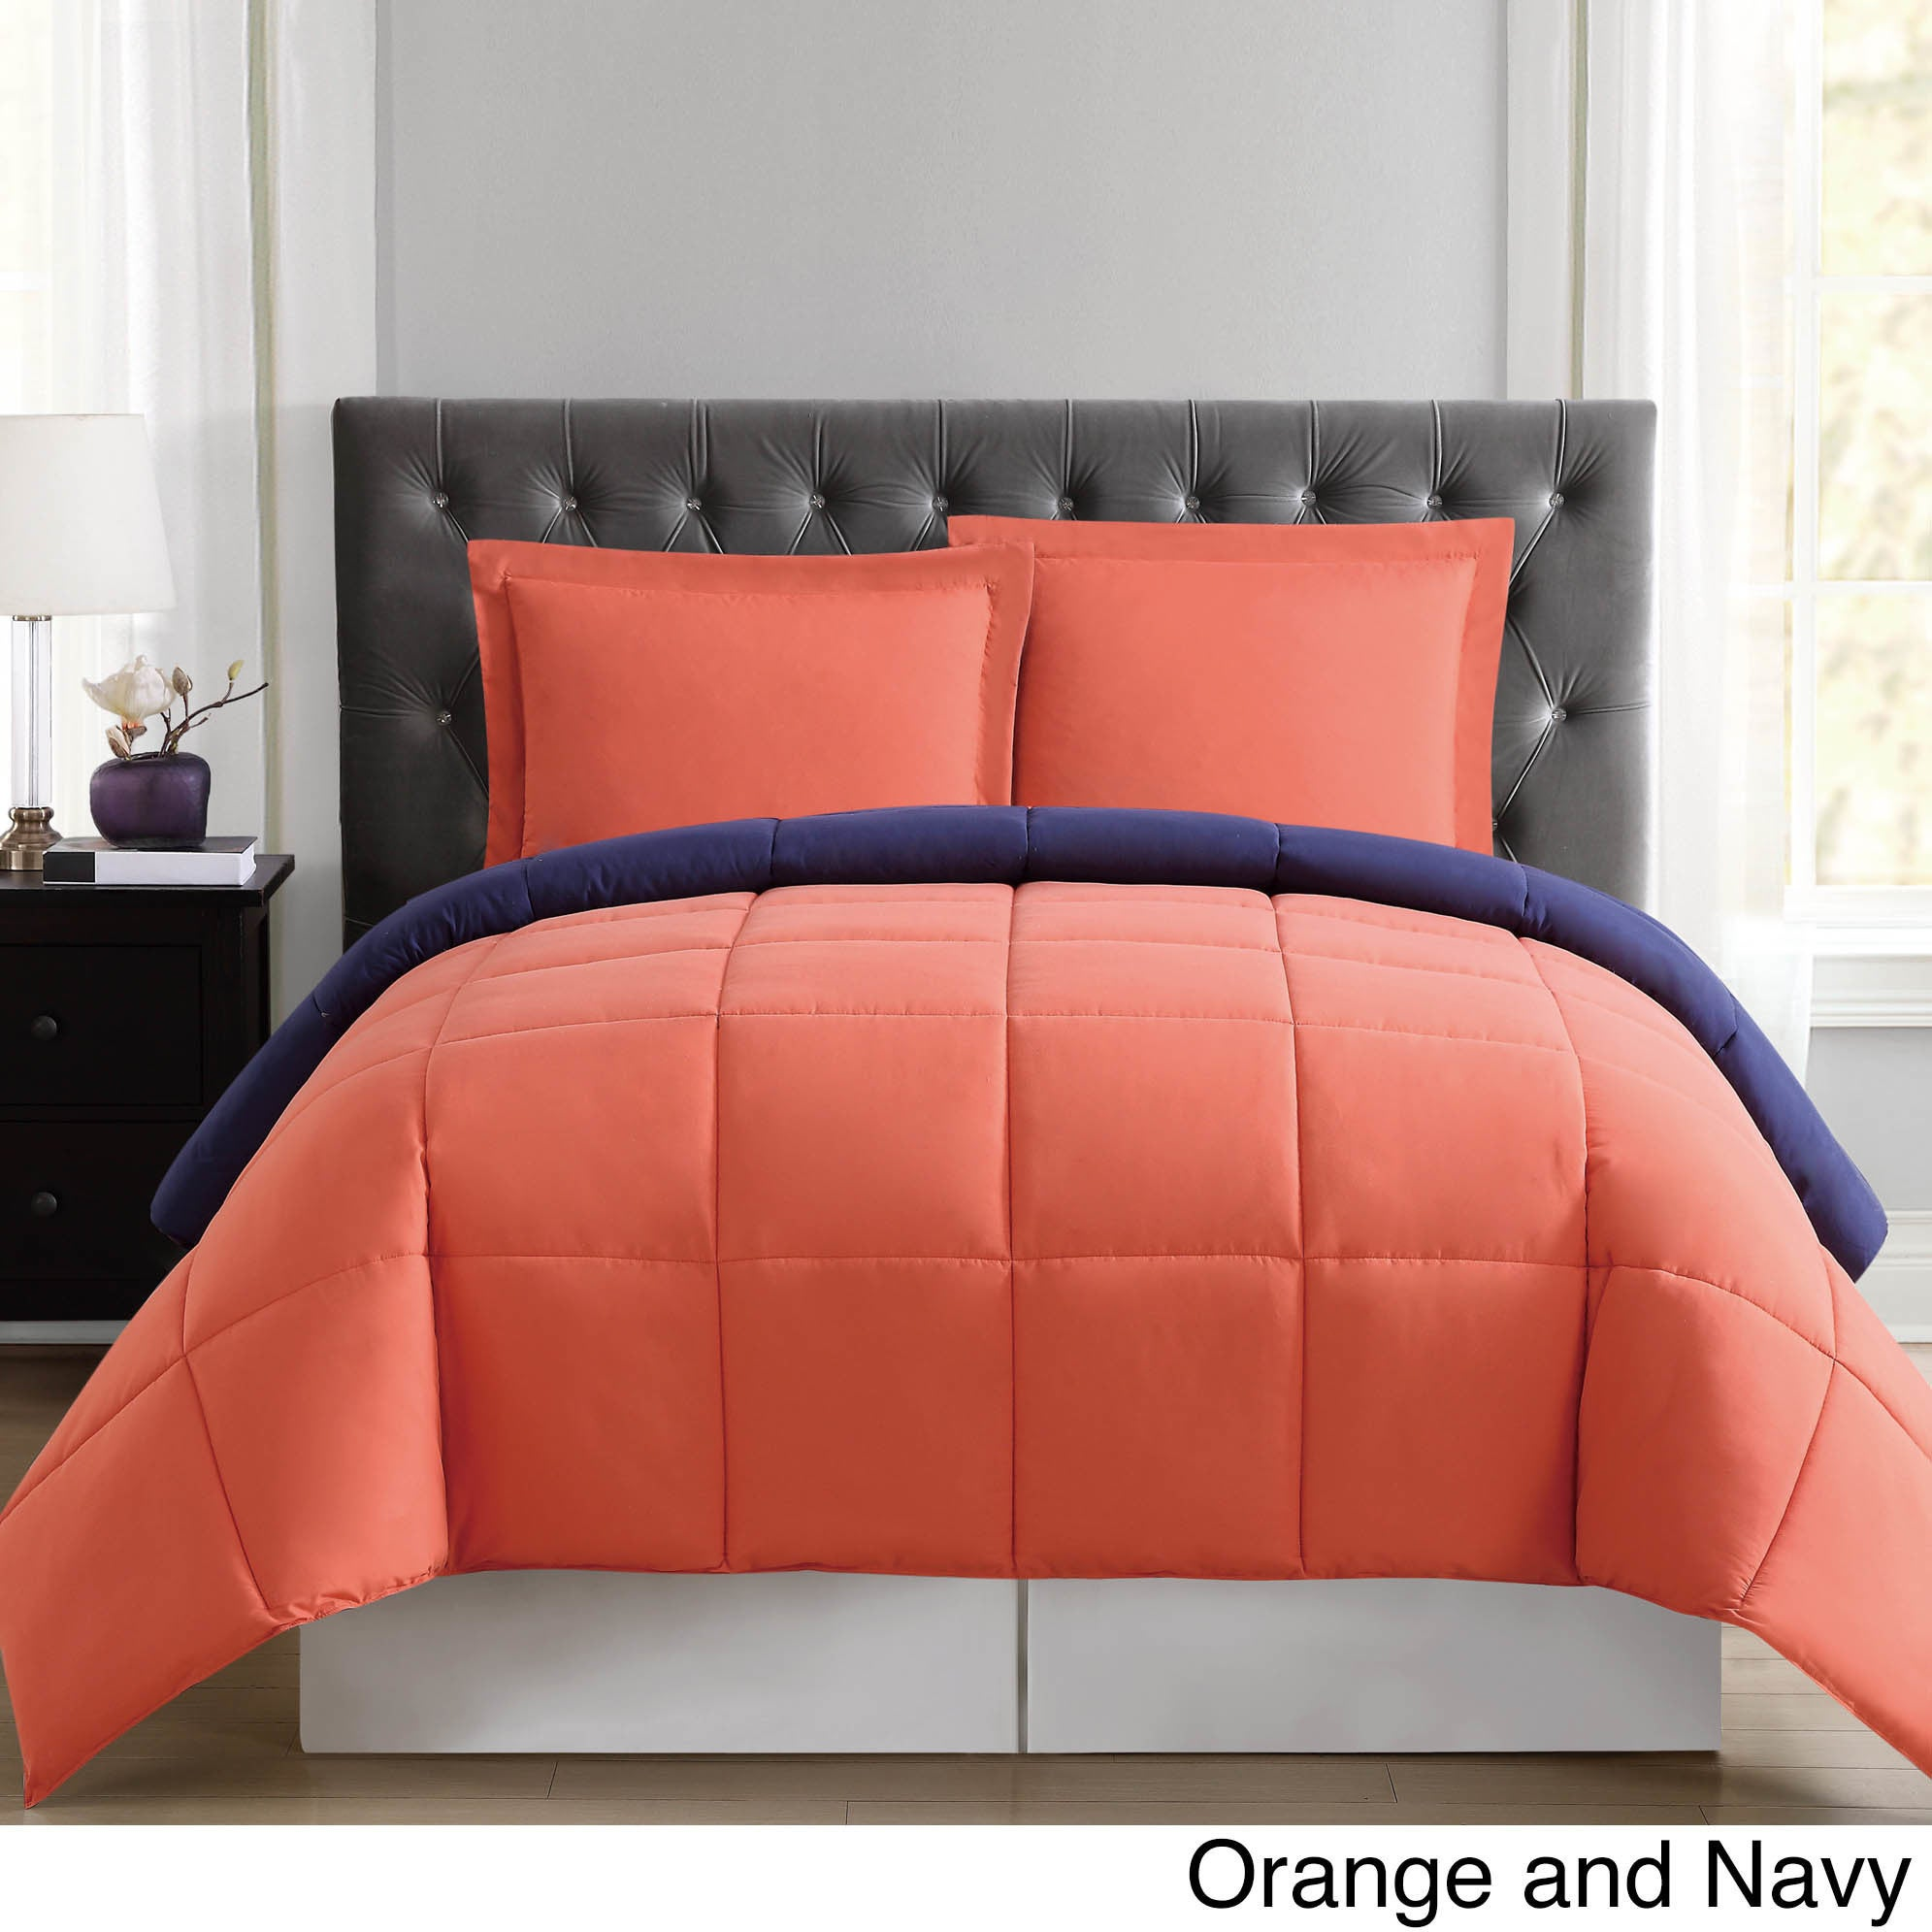 orange kohls vs beautiful purple pictures comforter bedding setsl white amazing and gray queen cheap fullqueen bed toddler sheets girl full stirring sets